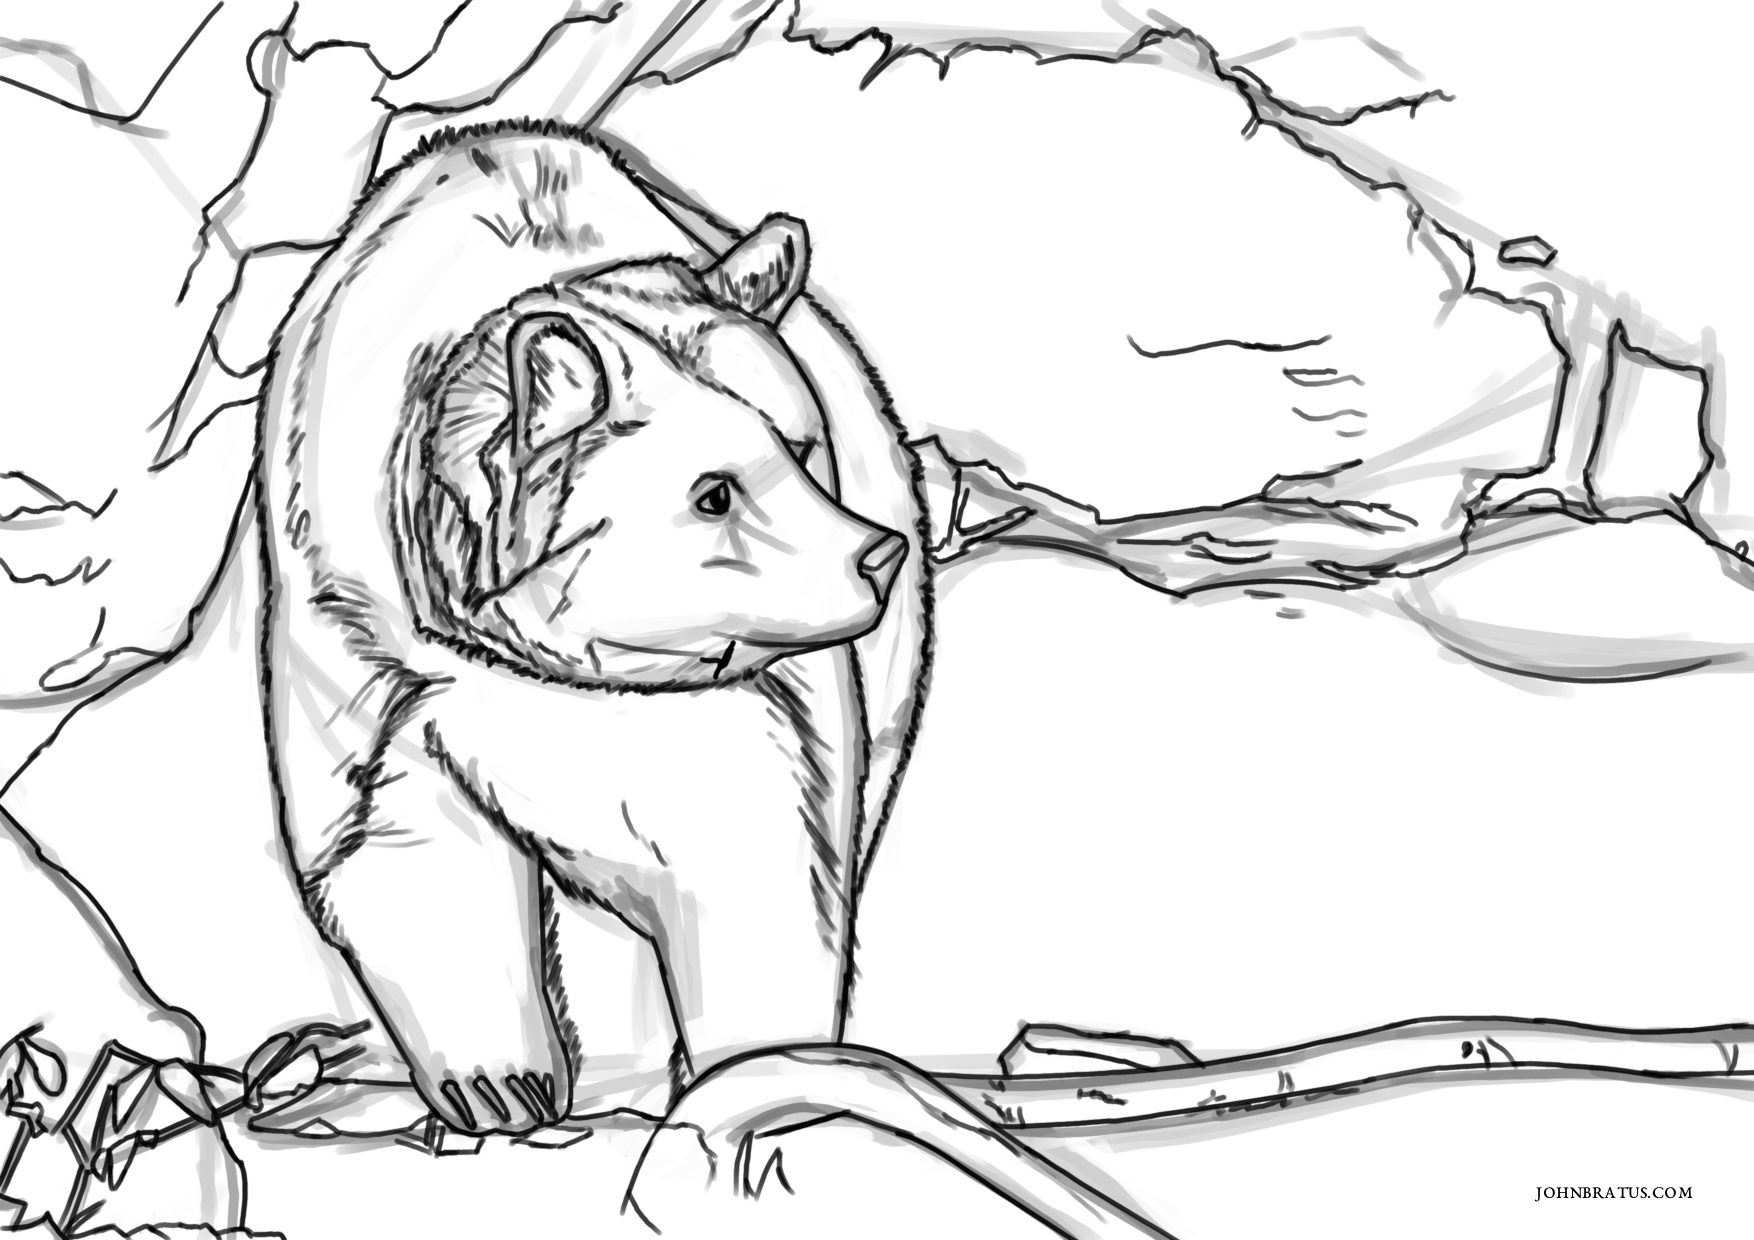 Digital sketch of a brown bear roaming outside his cave